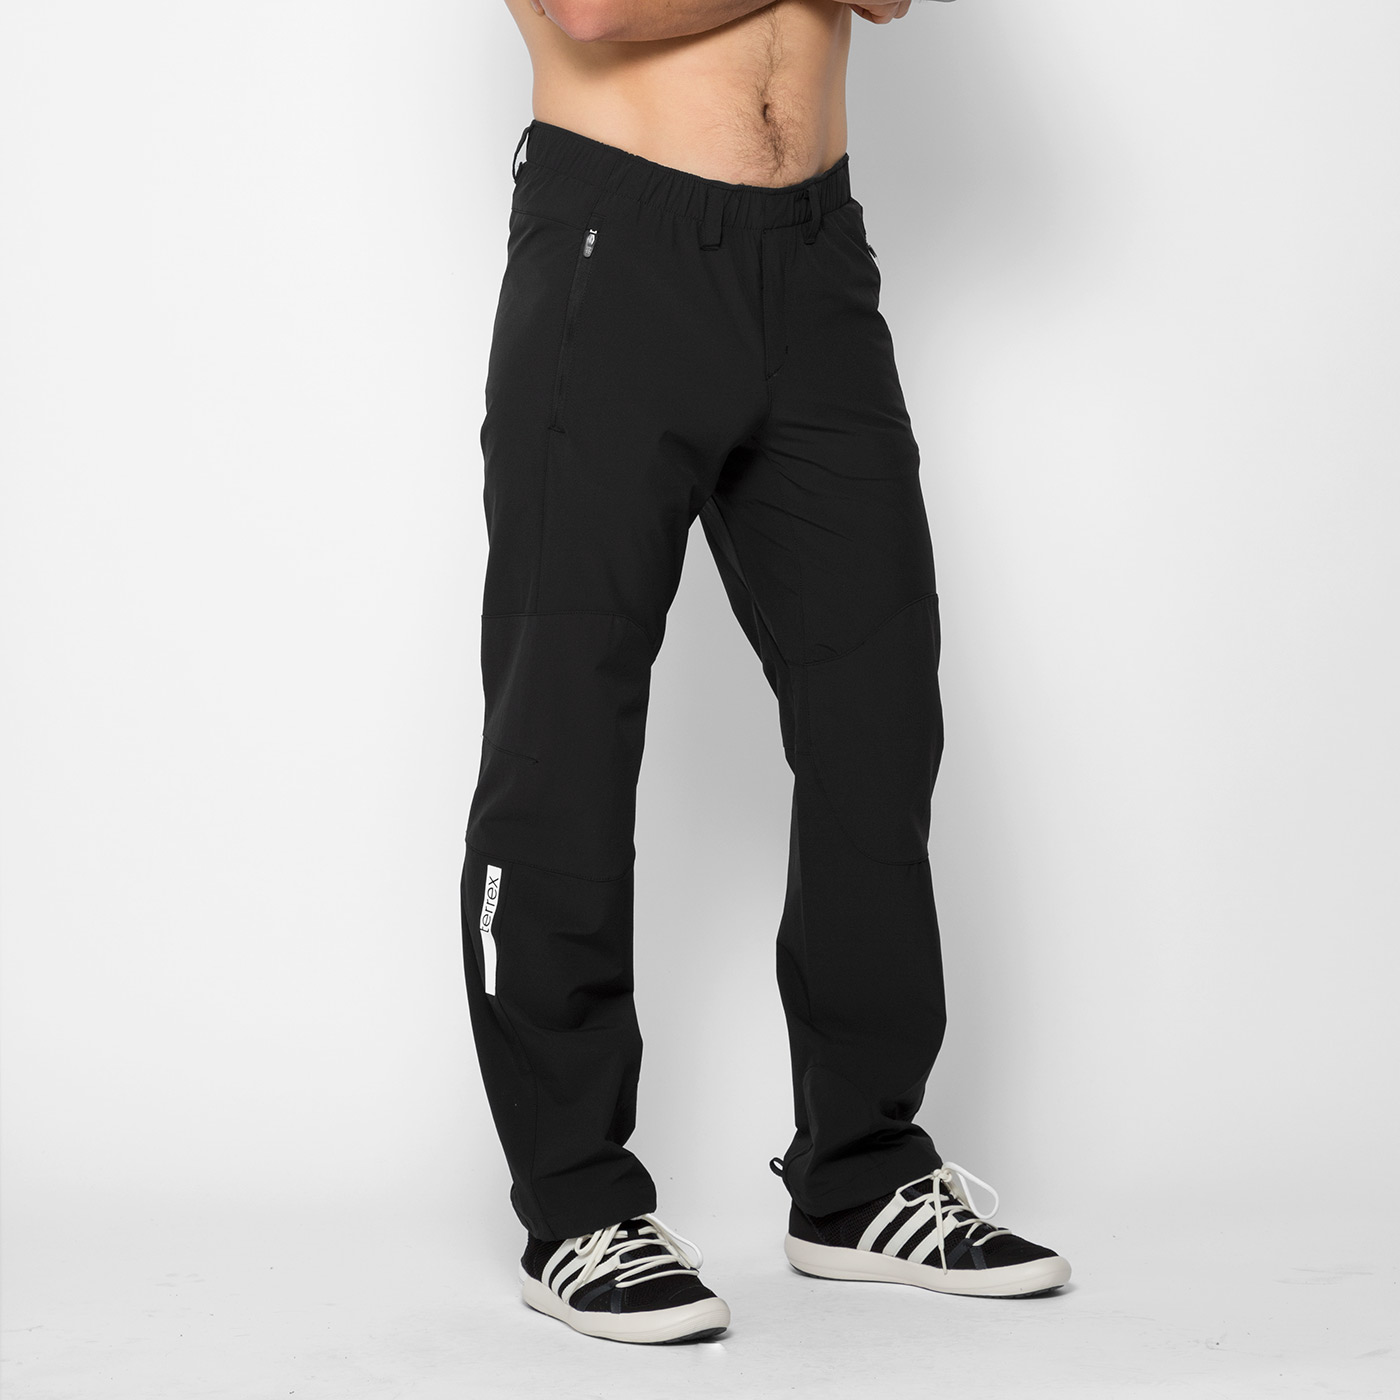 Adidas Terrex Multi Pant Mens Apparel at Vickerey